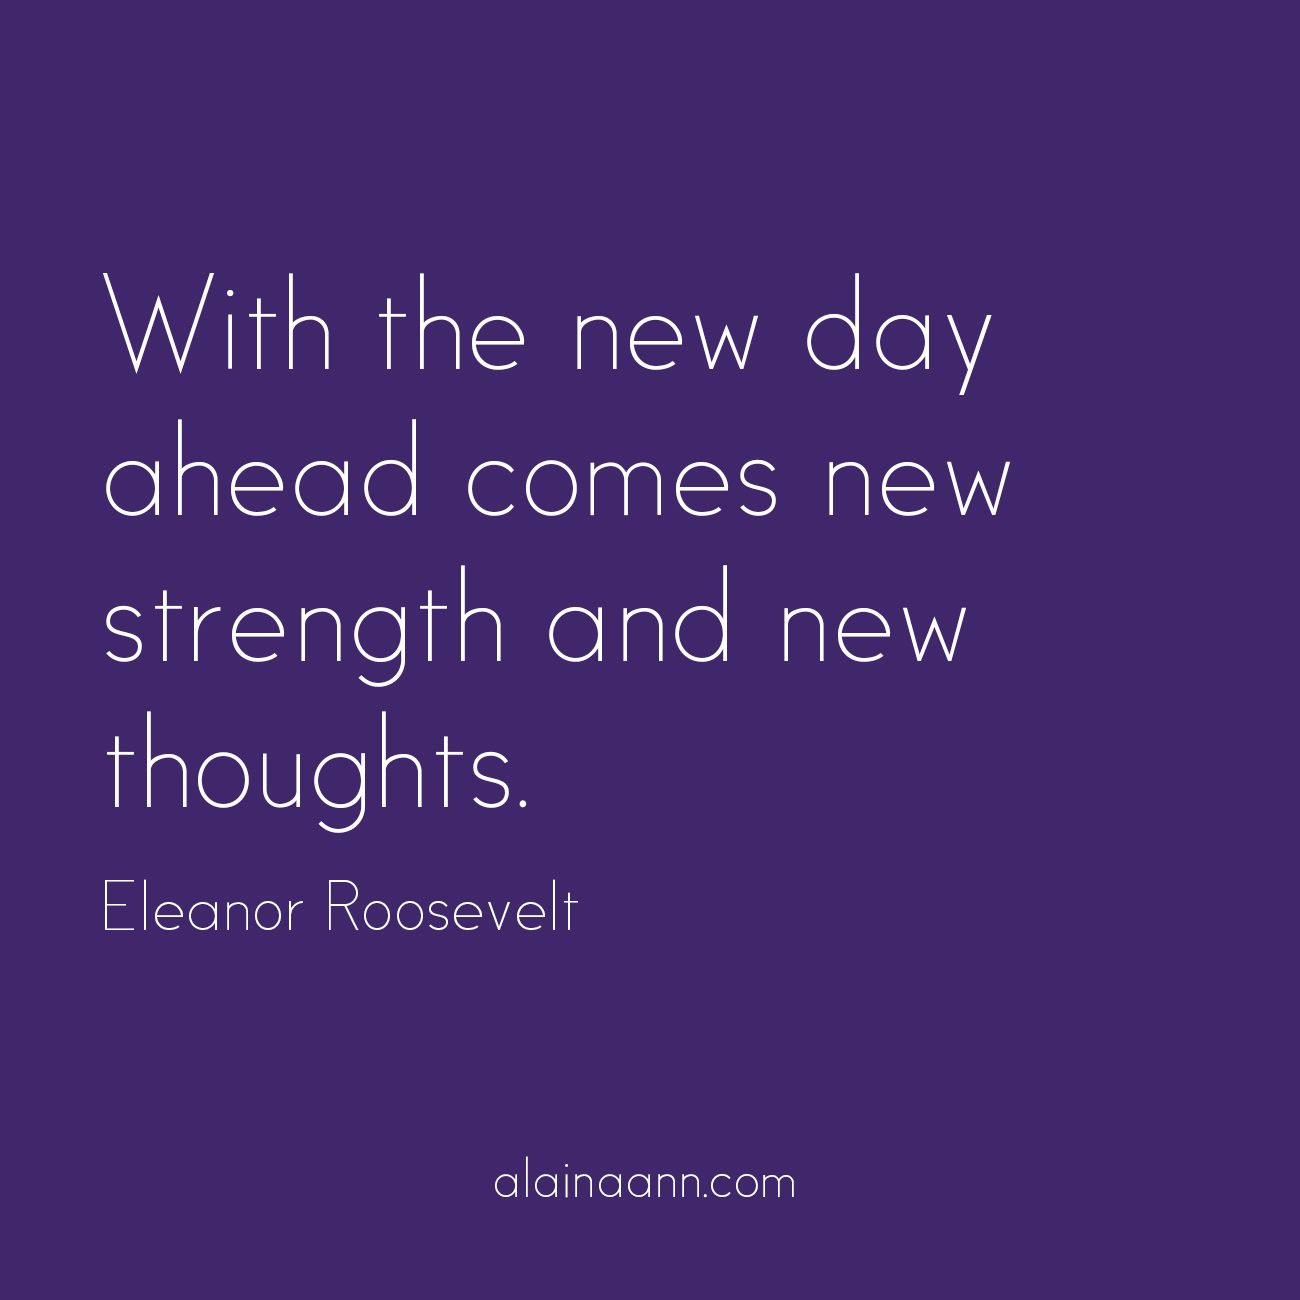 With The New Day Ahead Comes New Strength And New Thoughts Eleanor